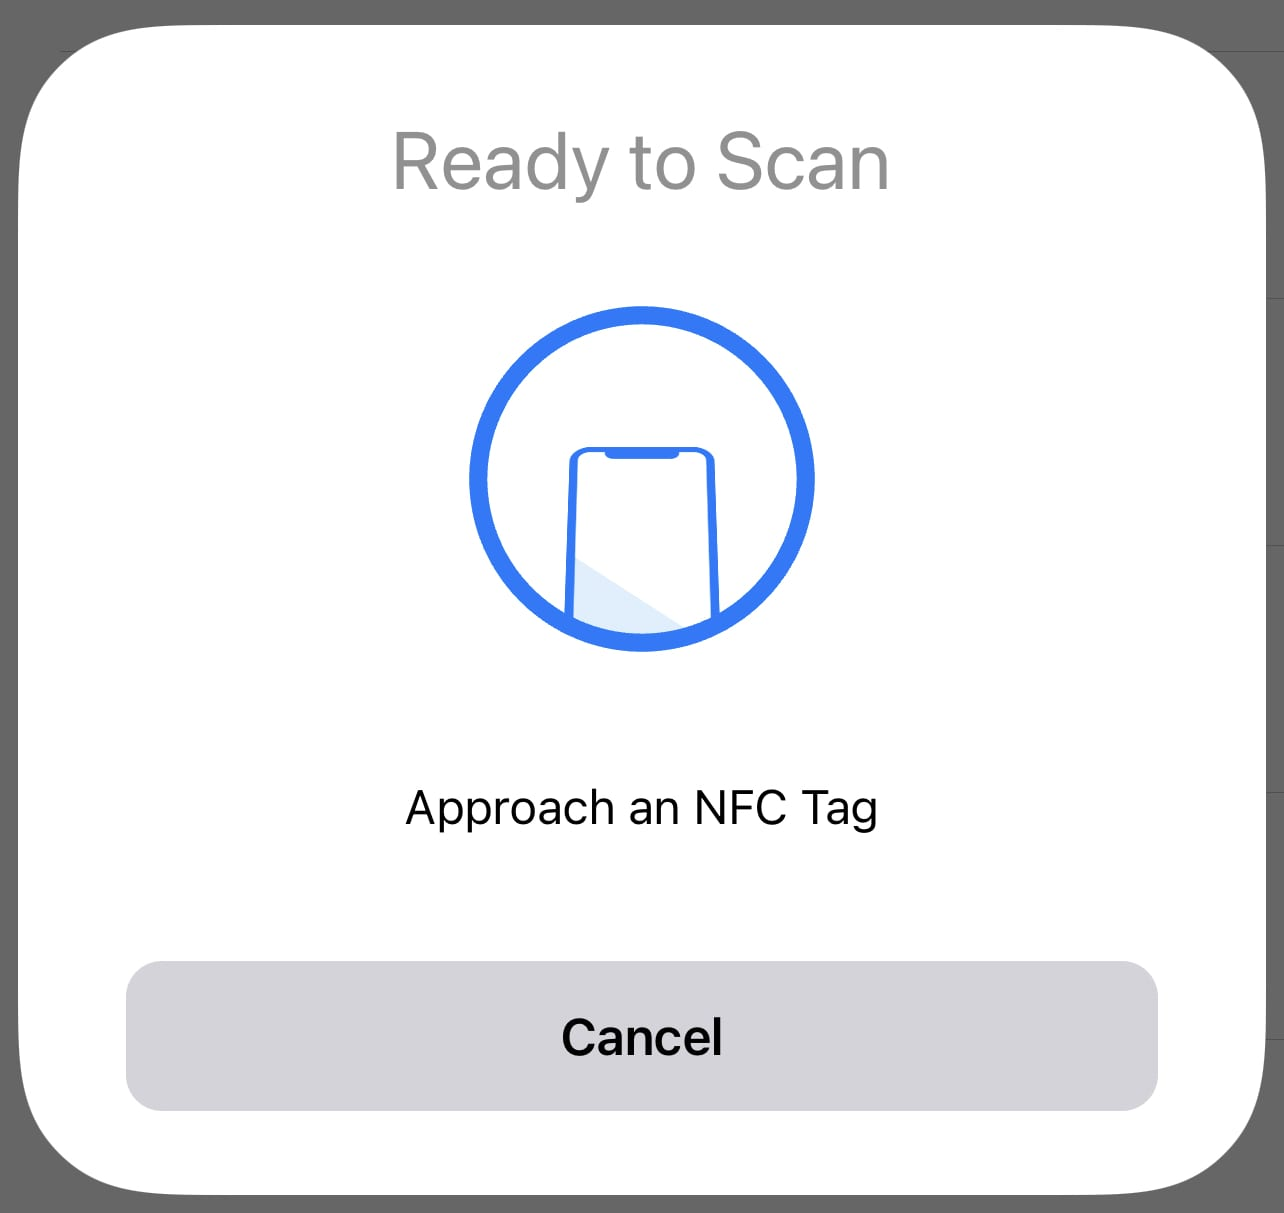 Bring the top of the iPhone to your NFC tag